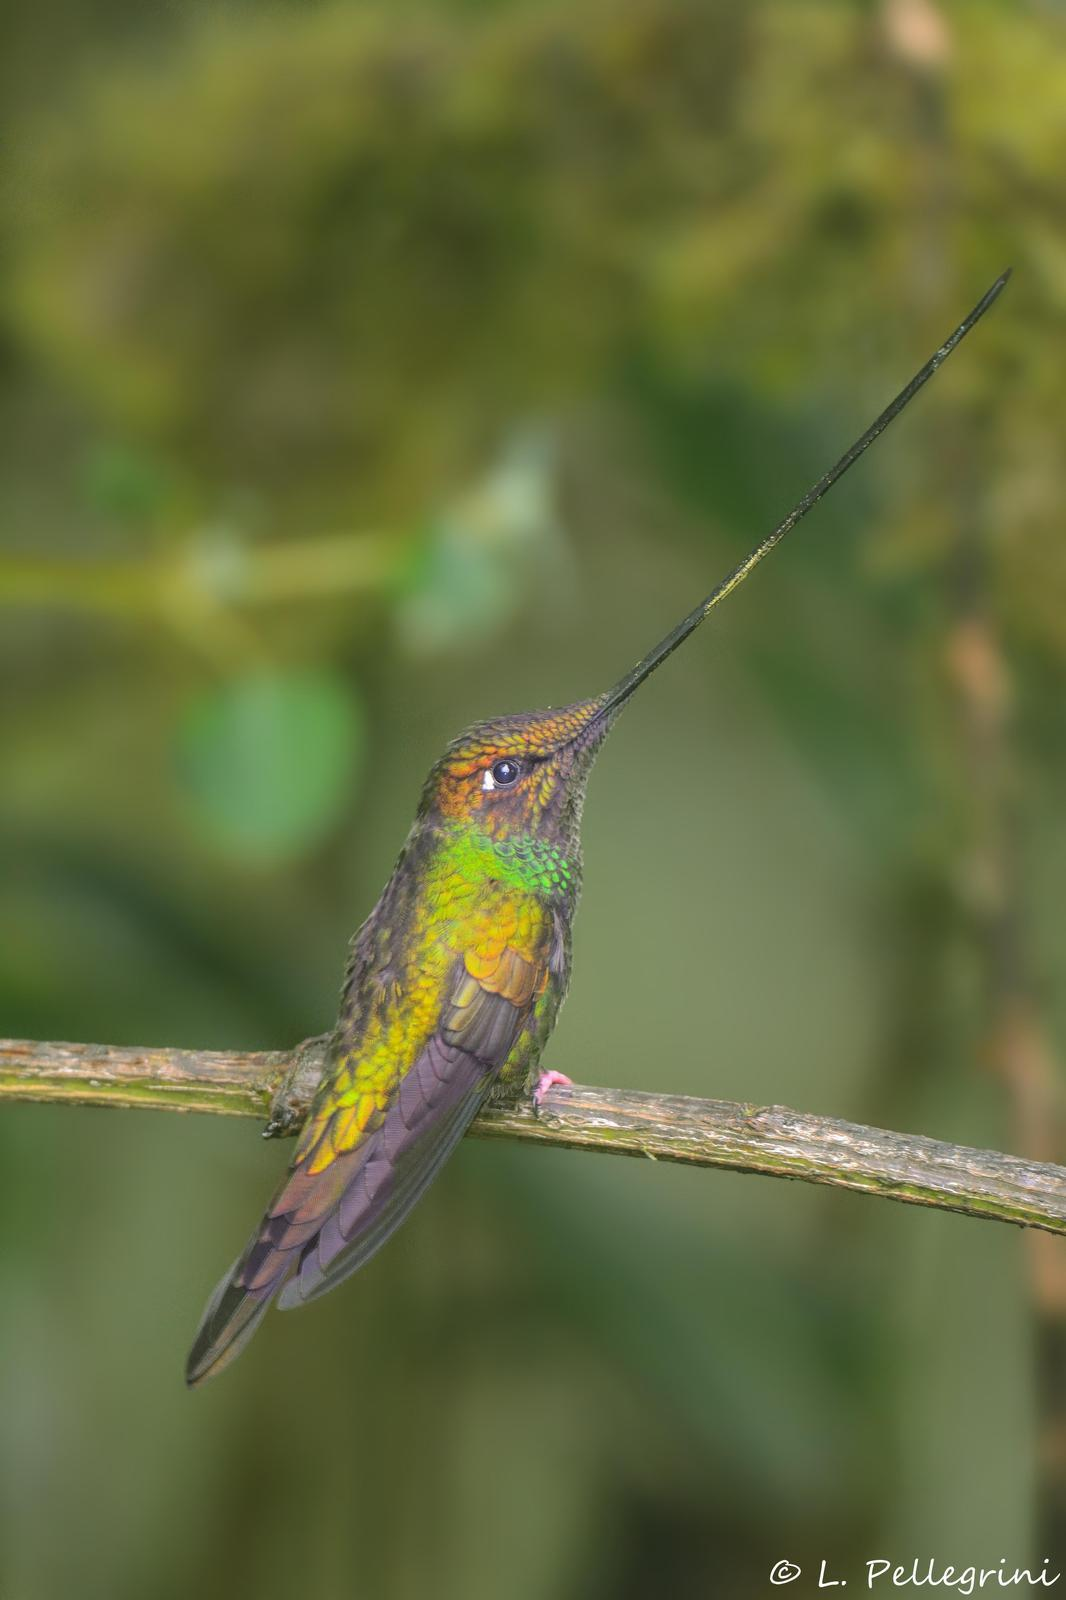 Sword-billed Hummingbird Photo by Laurence Pellegrini